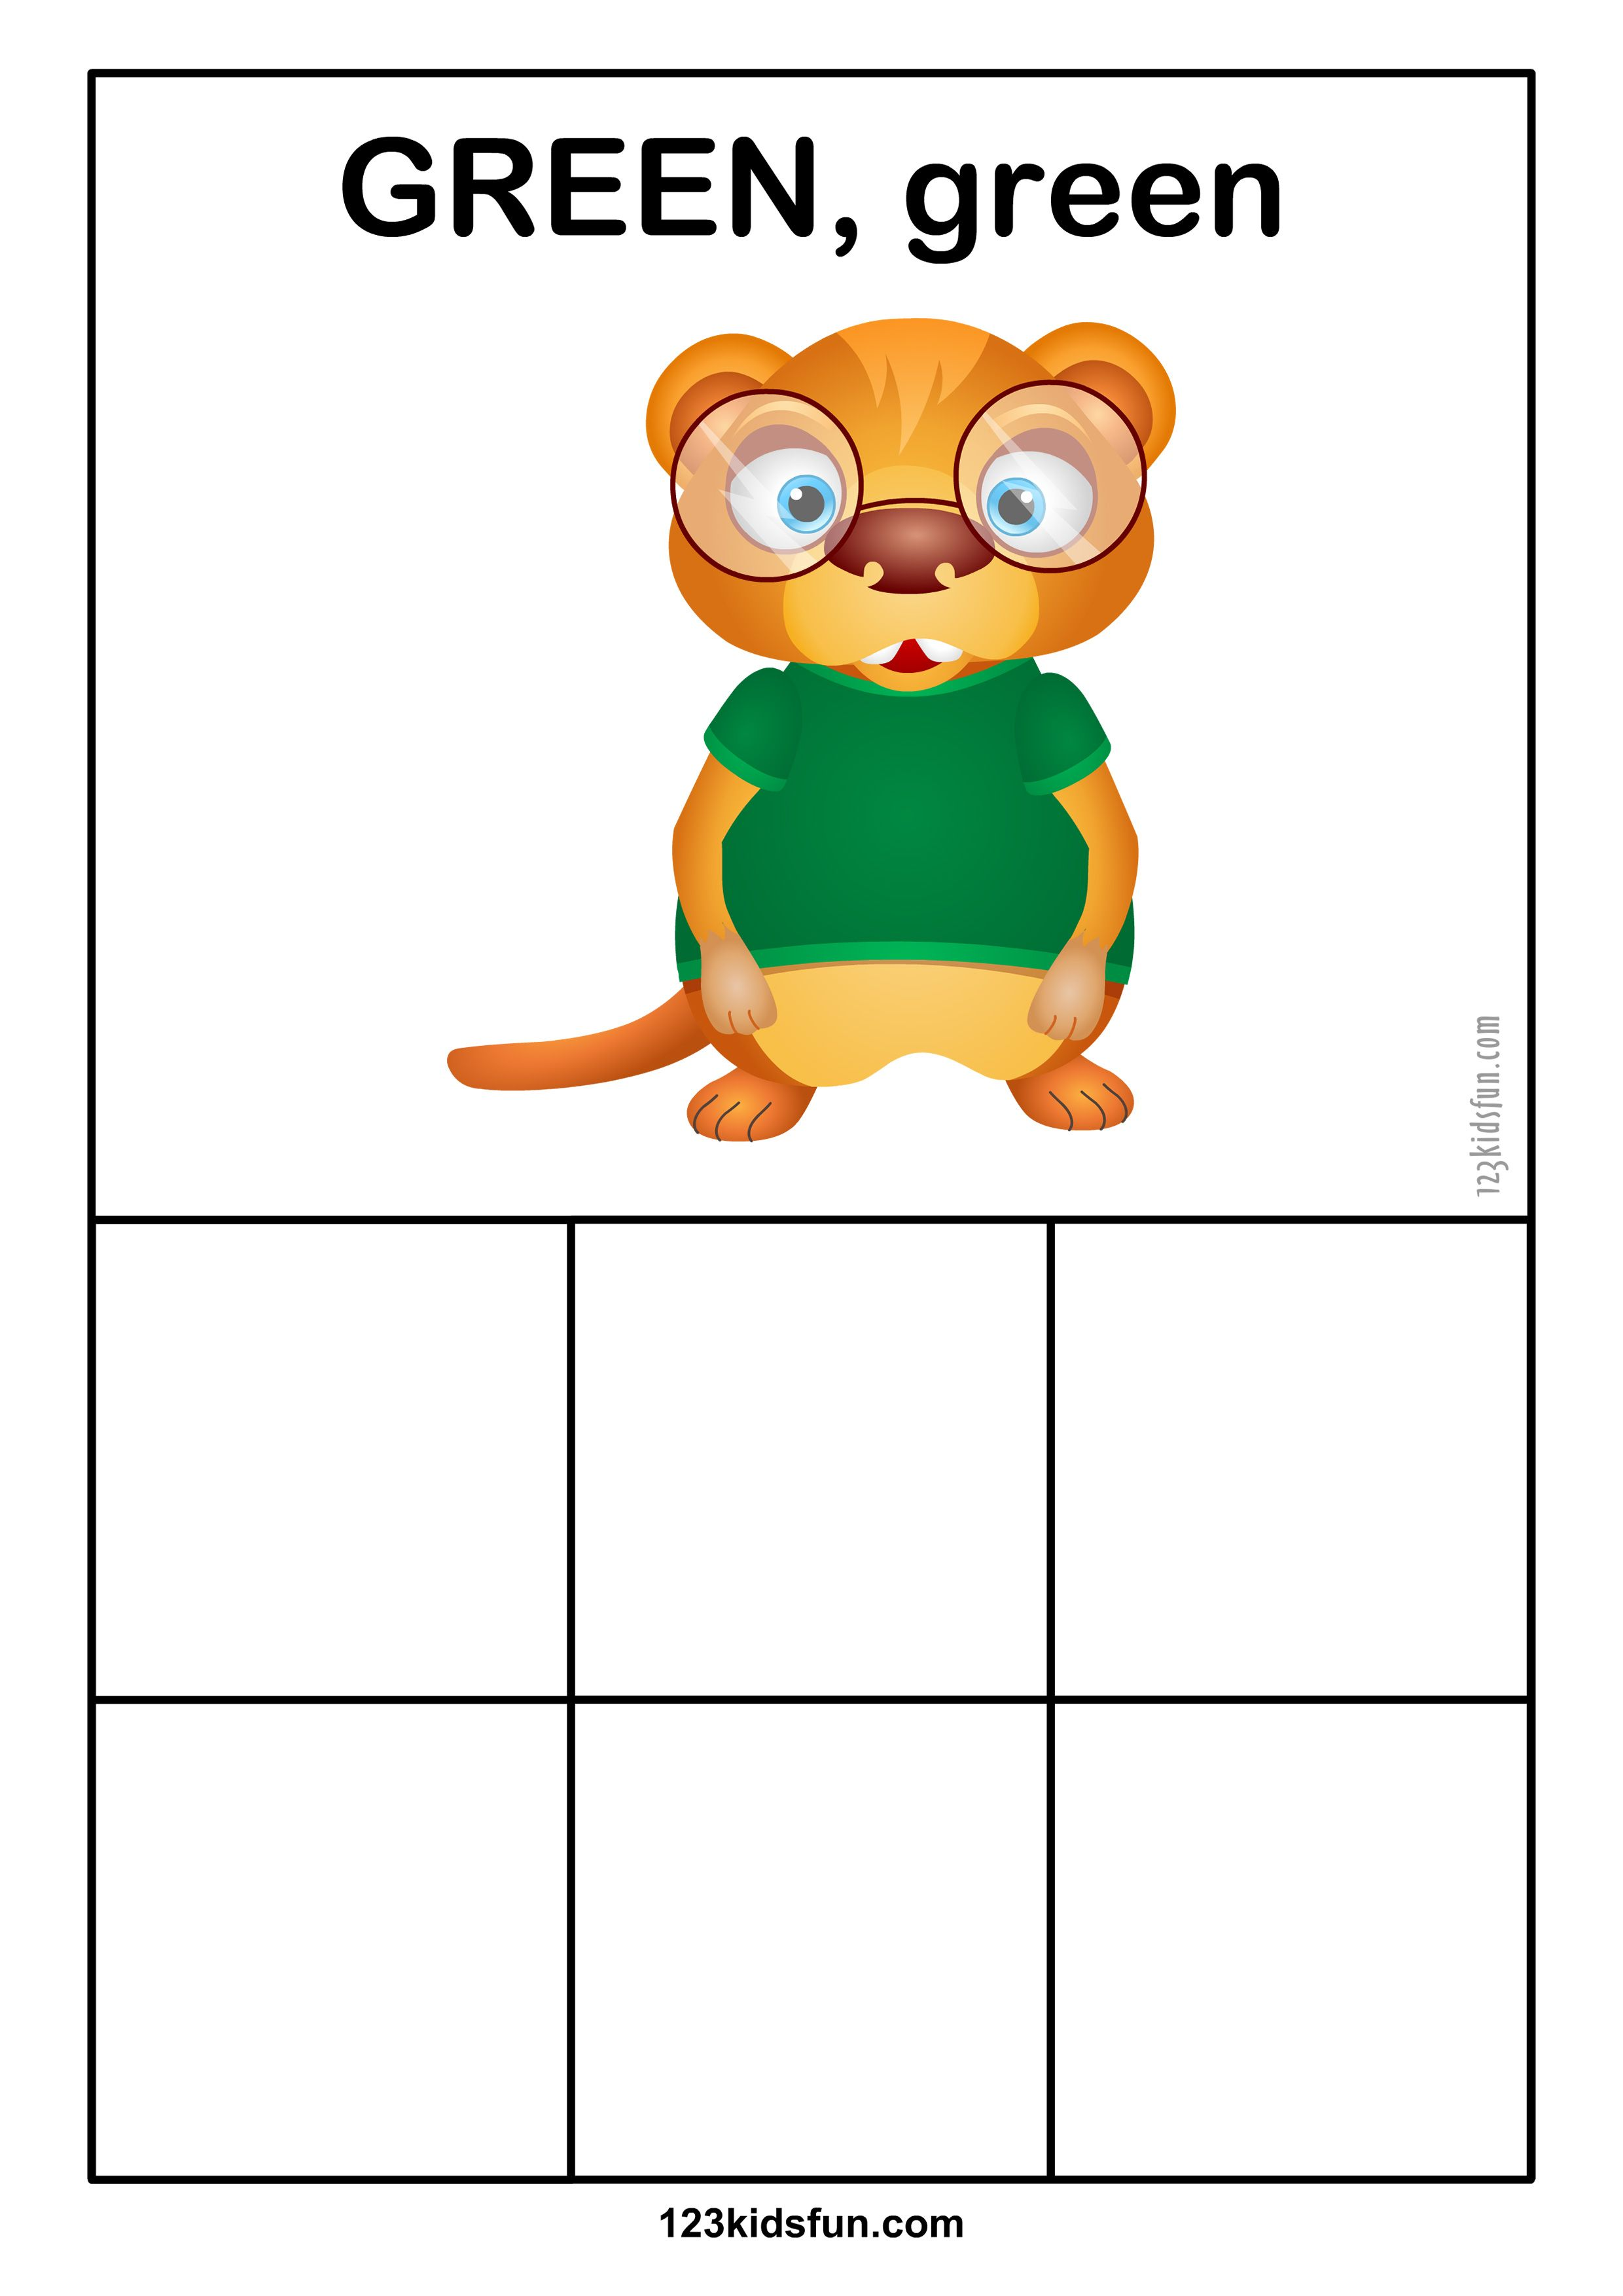 Color Matching Activity For Preschoolers